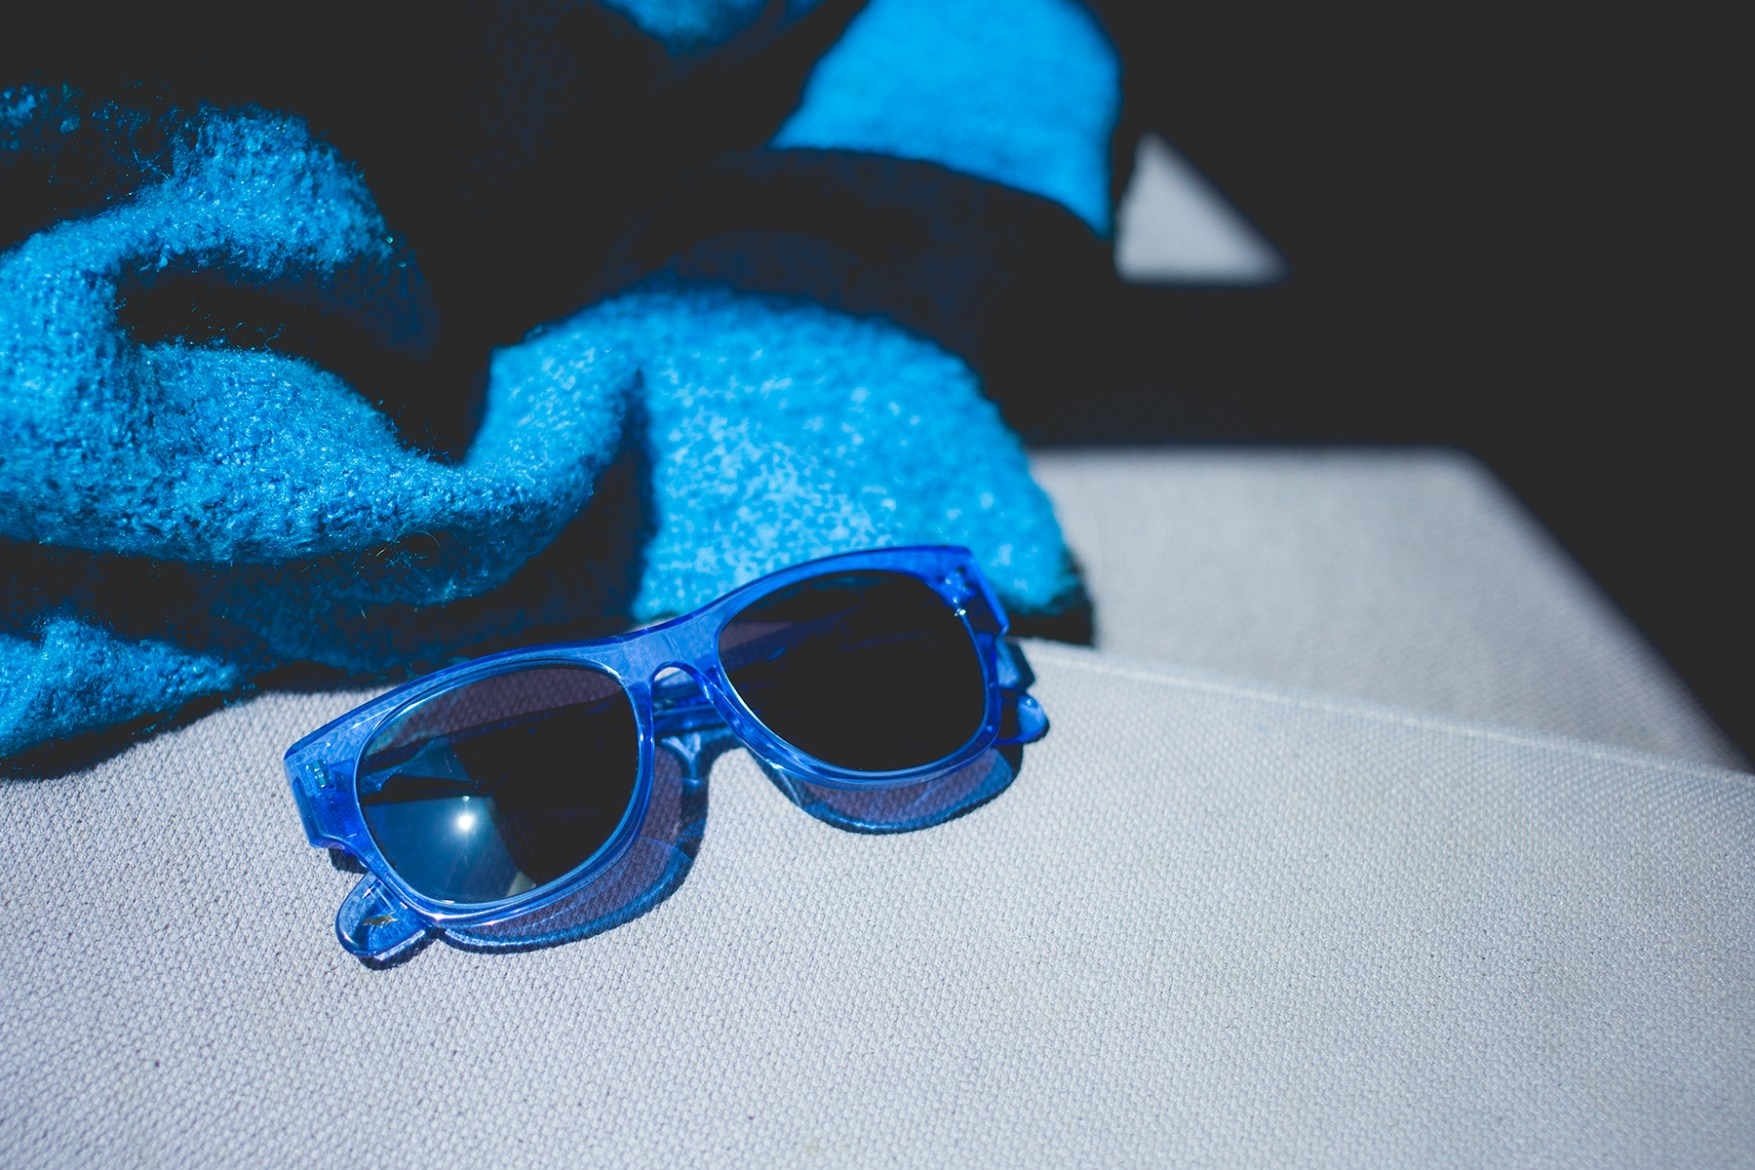 Del Toro Shoes x Red's Outfitters 2014 Sunglasses